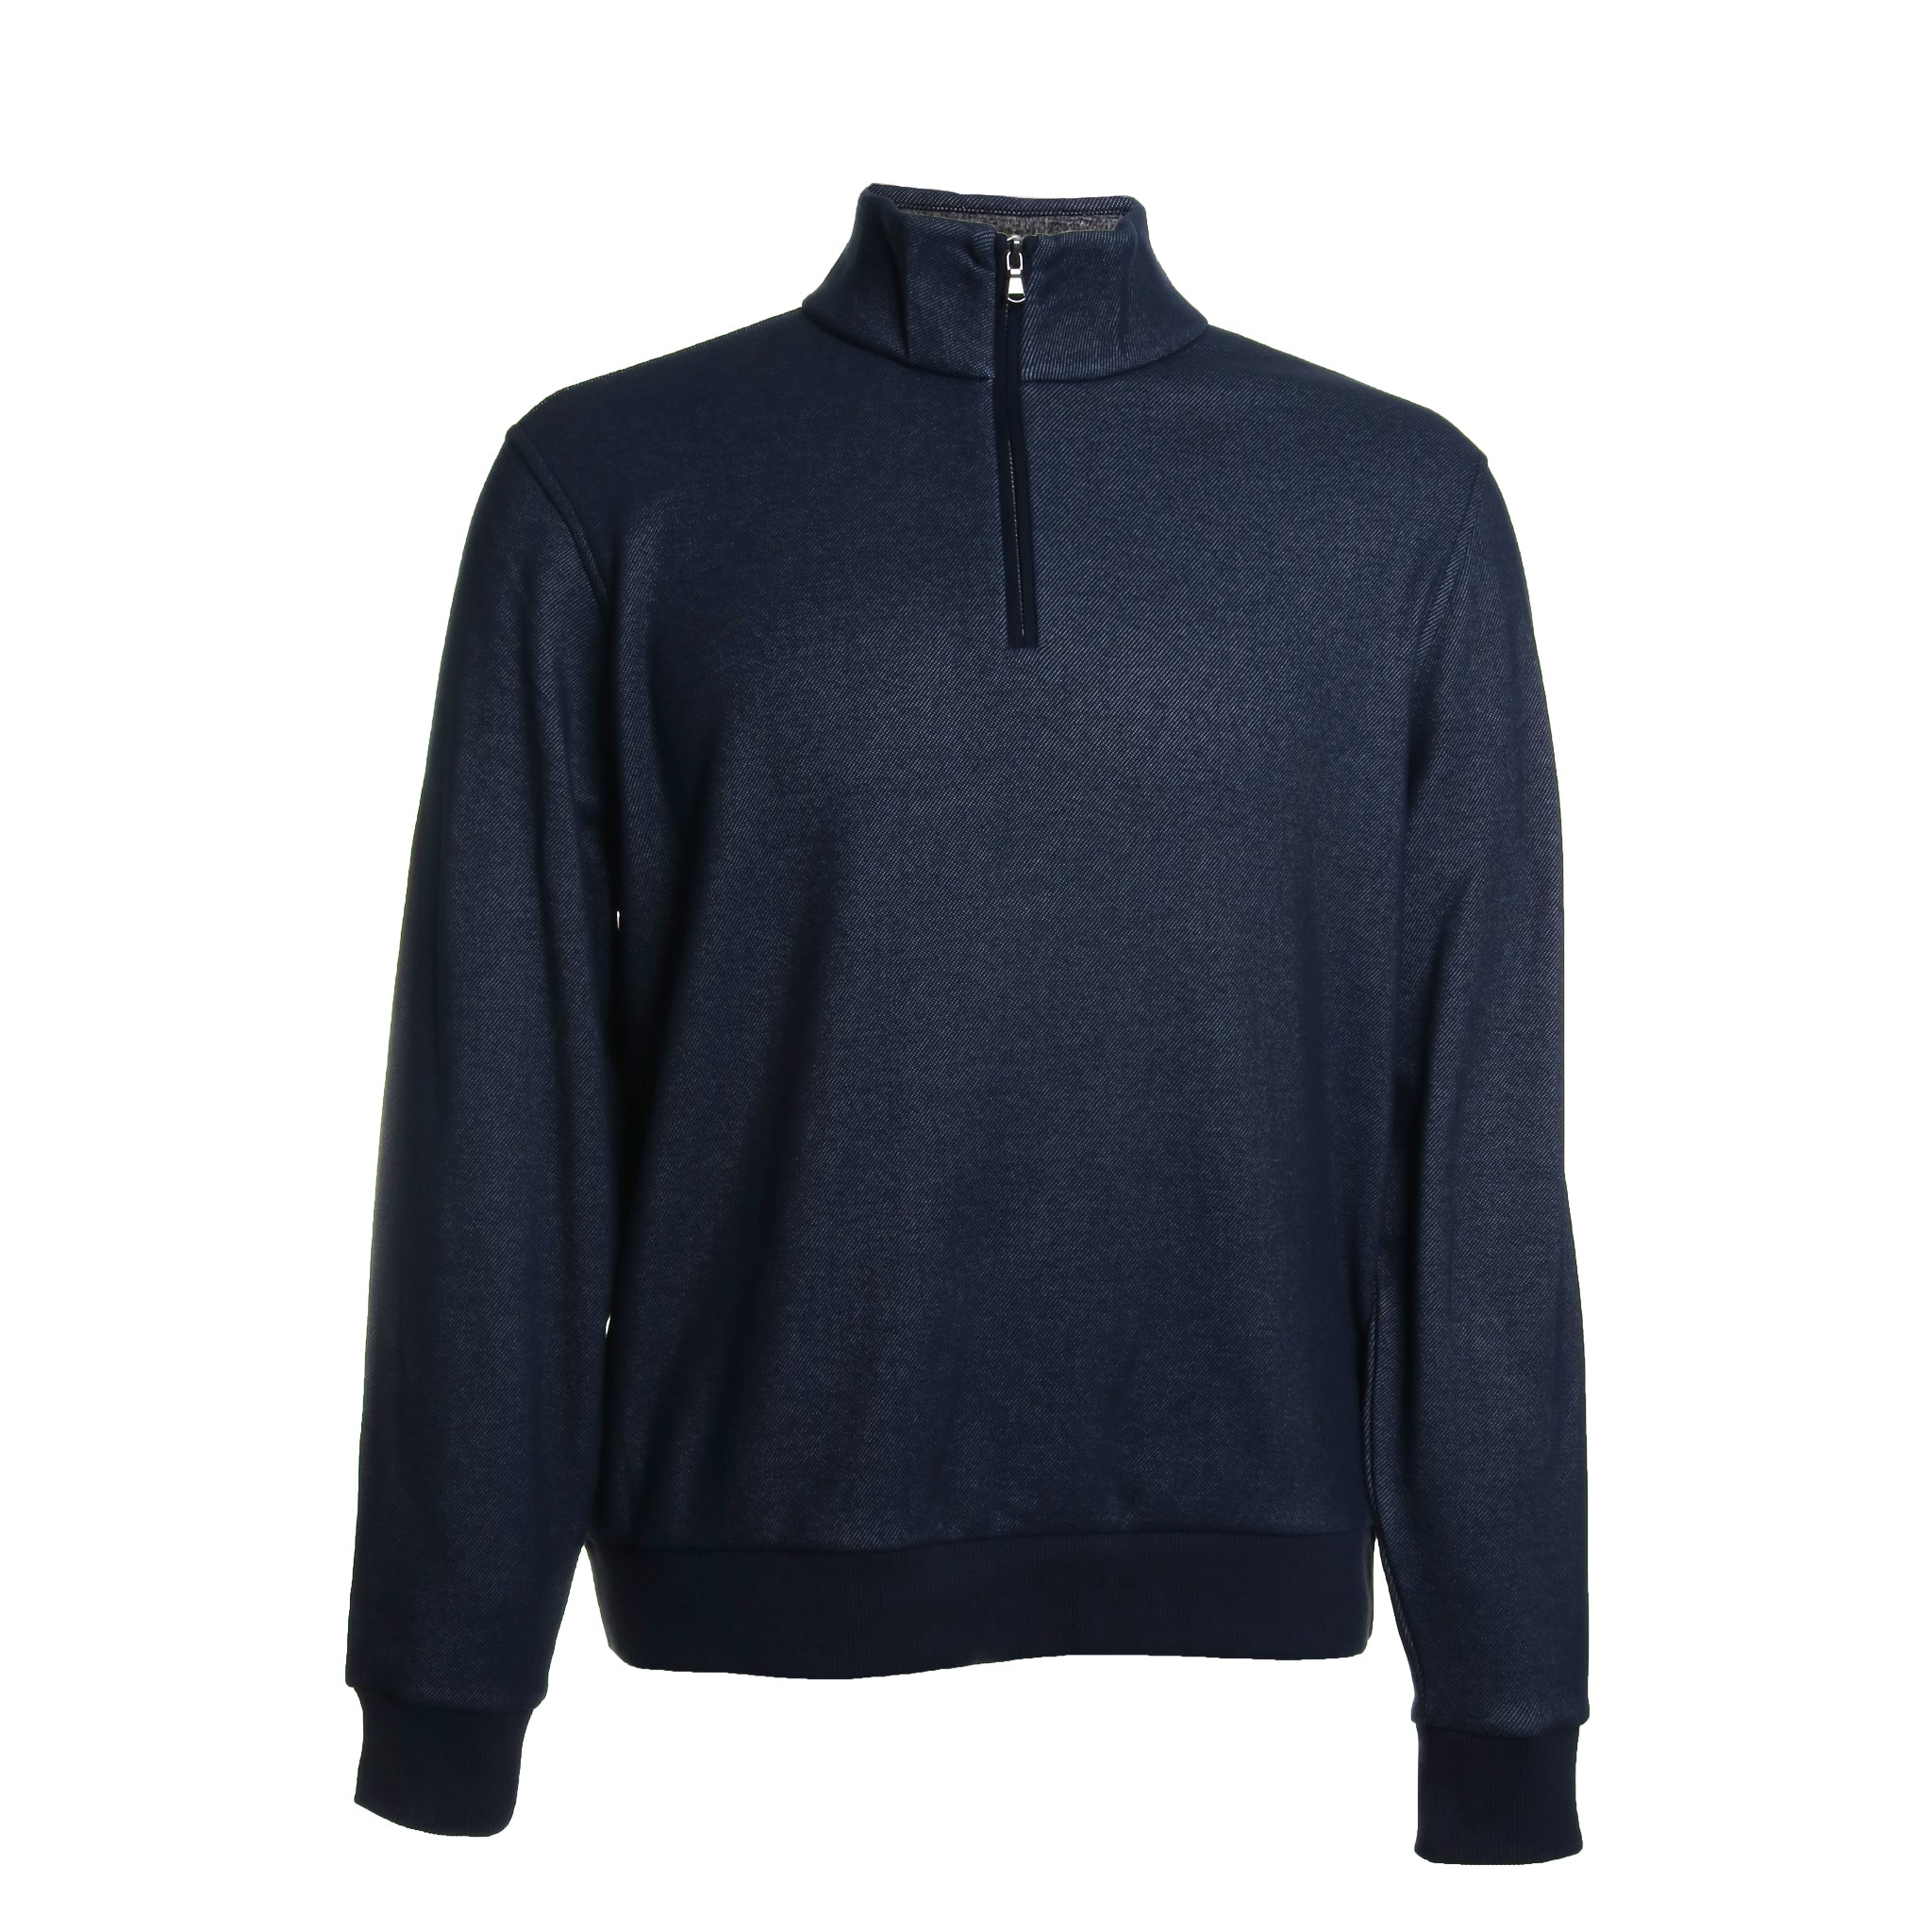 Braemore 1/4 Zip Sweater